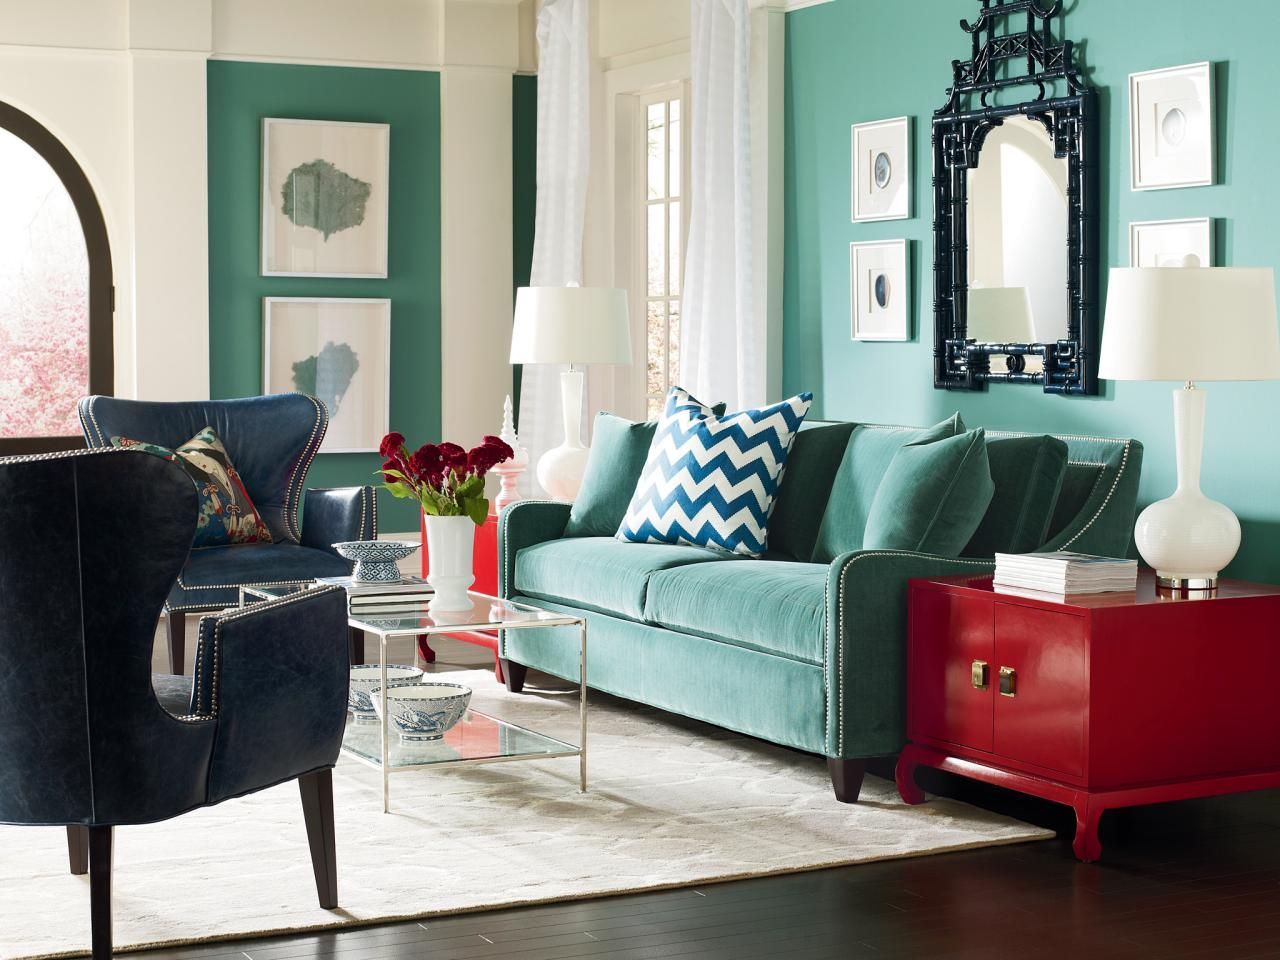 Turquoise Living Room With Red End Table Living Room Turquoise Living Room Red Living Room Green #turquoise #and #red #living #room